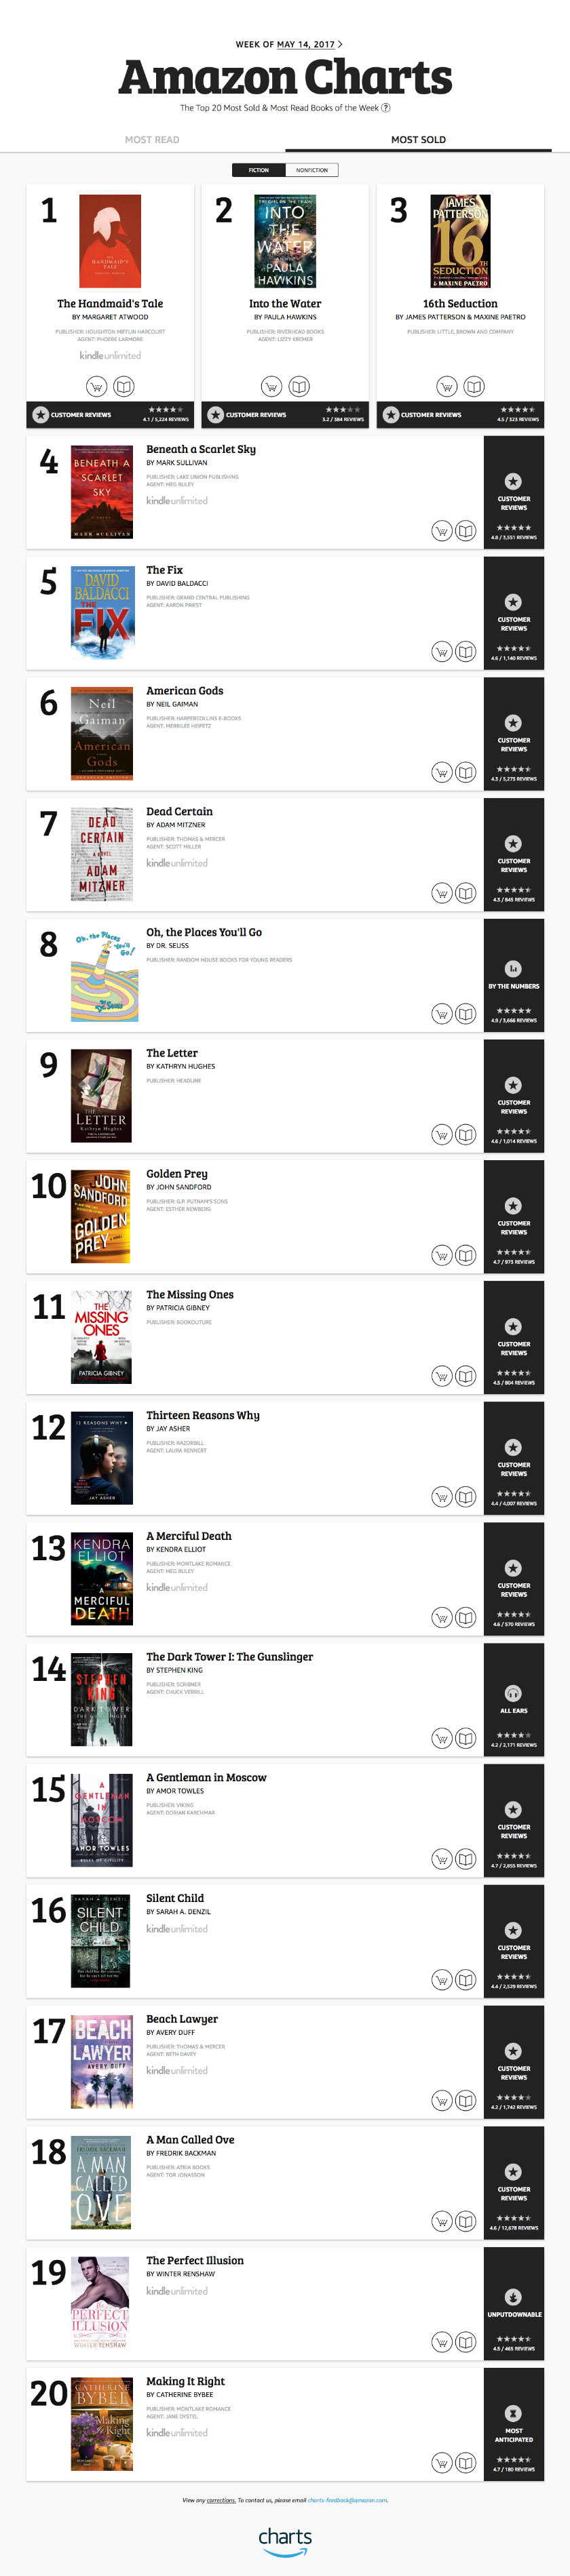 The inaugural Top 20 Most Sold books in fiction - Amazon Charts